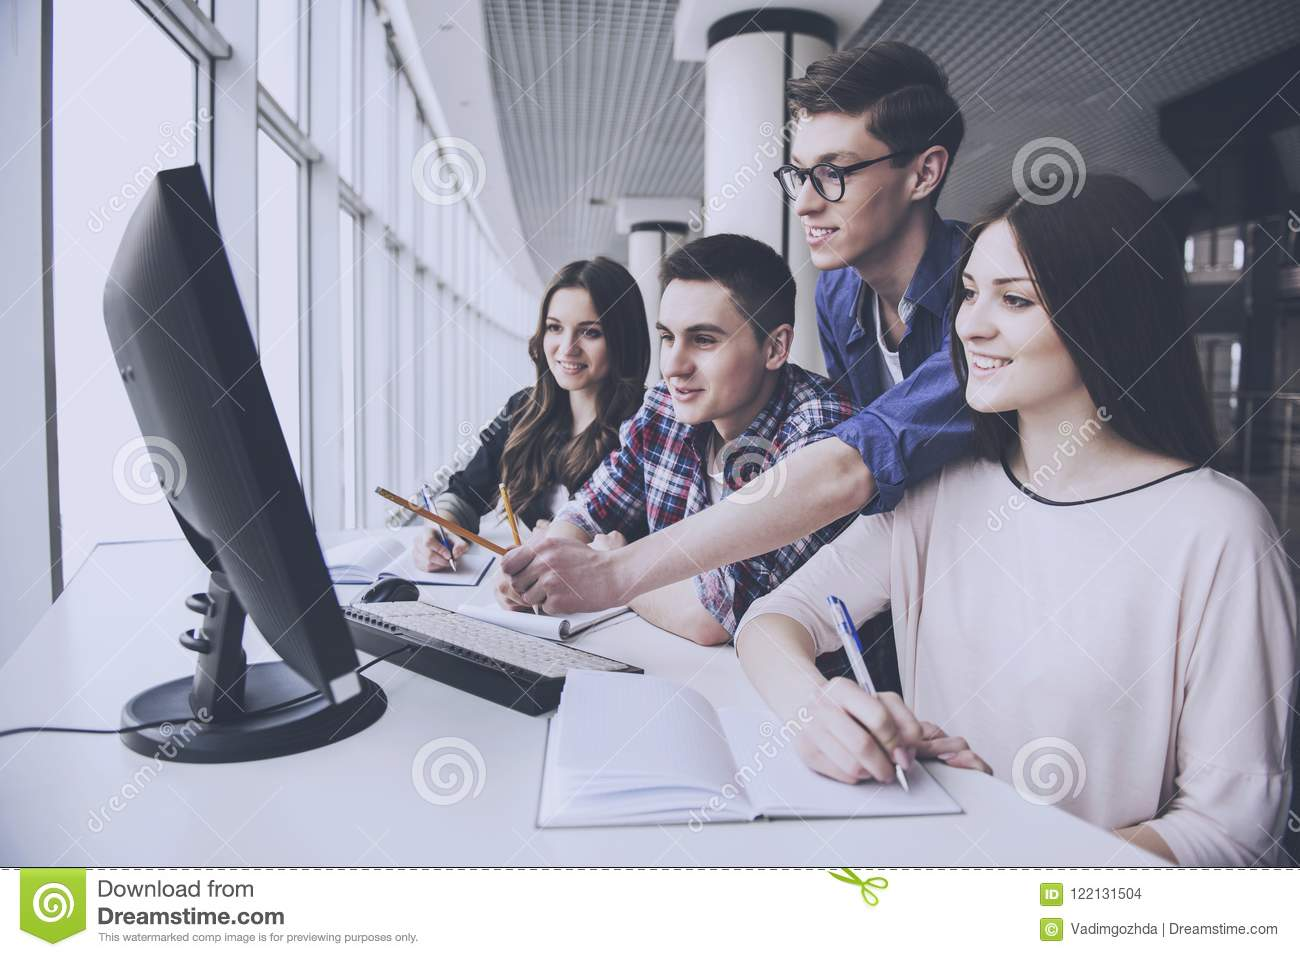 Students are Looking on Computer at University.